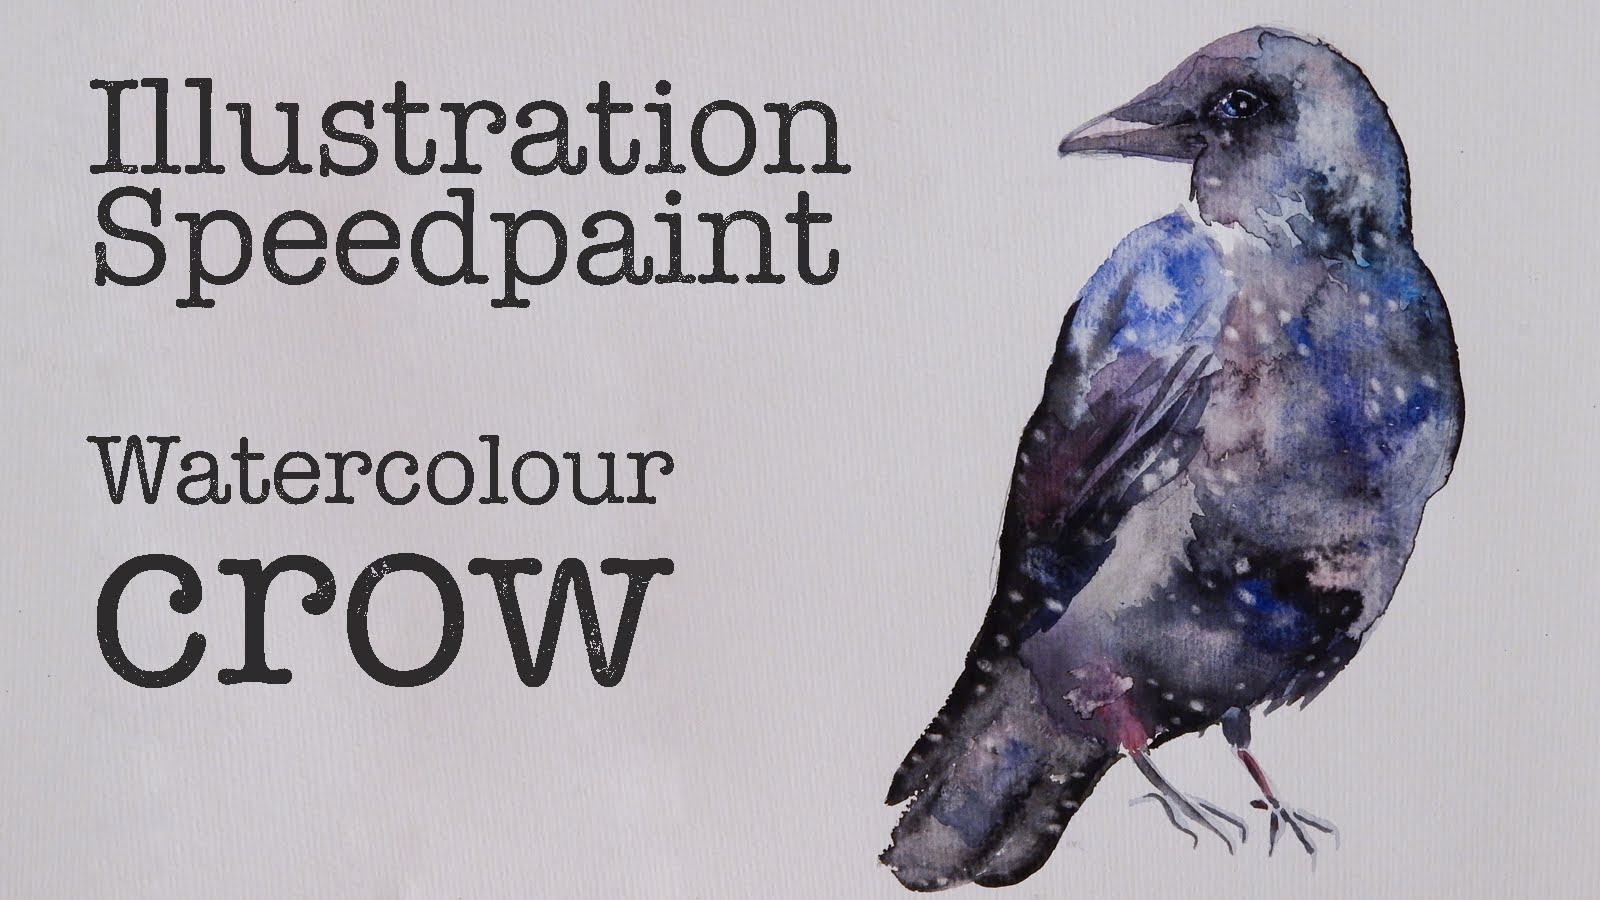 1600x900 Watercolour Crow Speed Paint